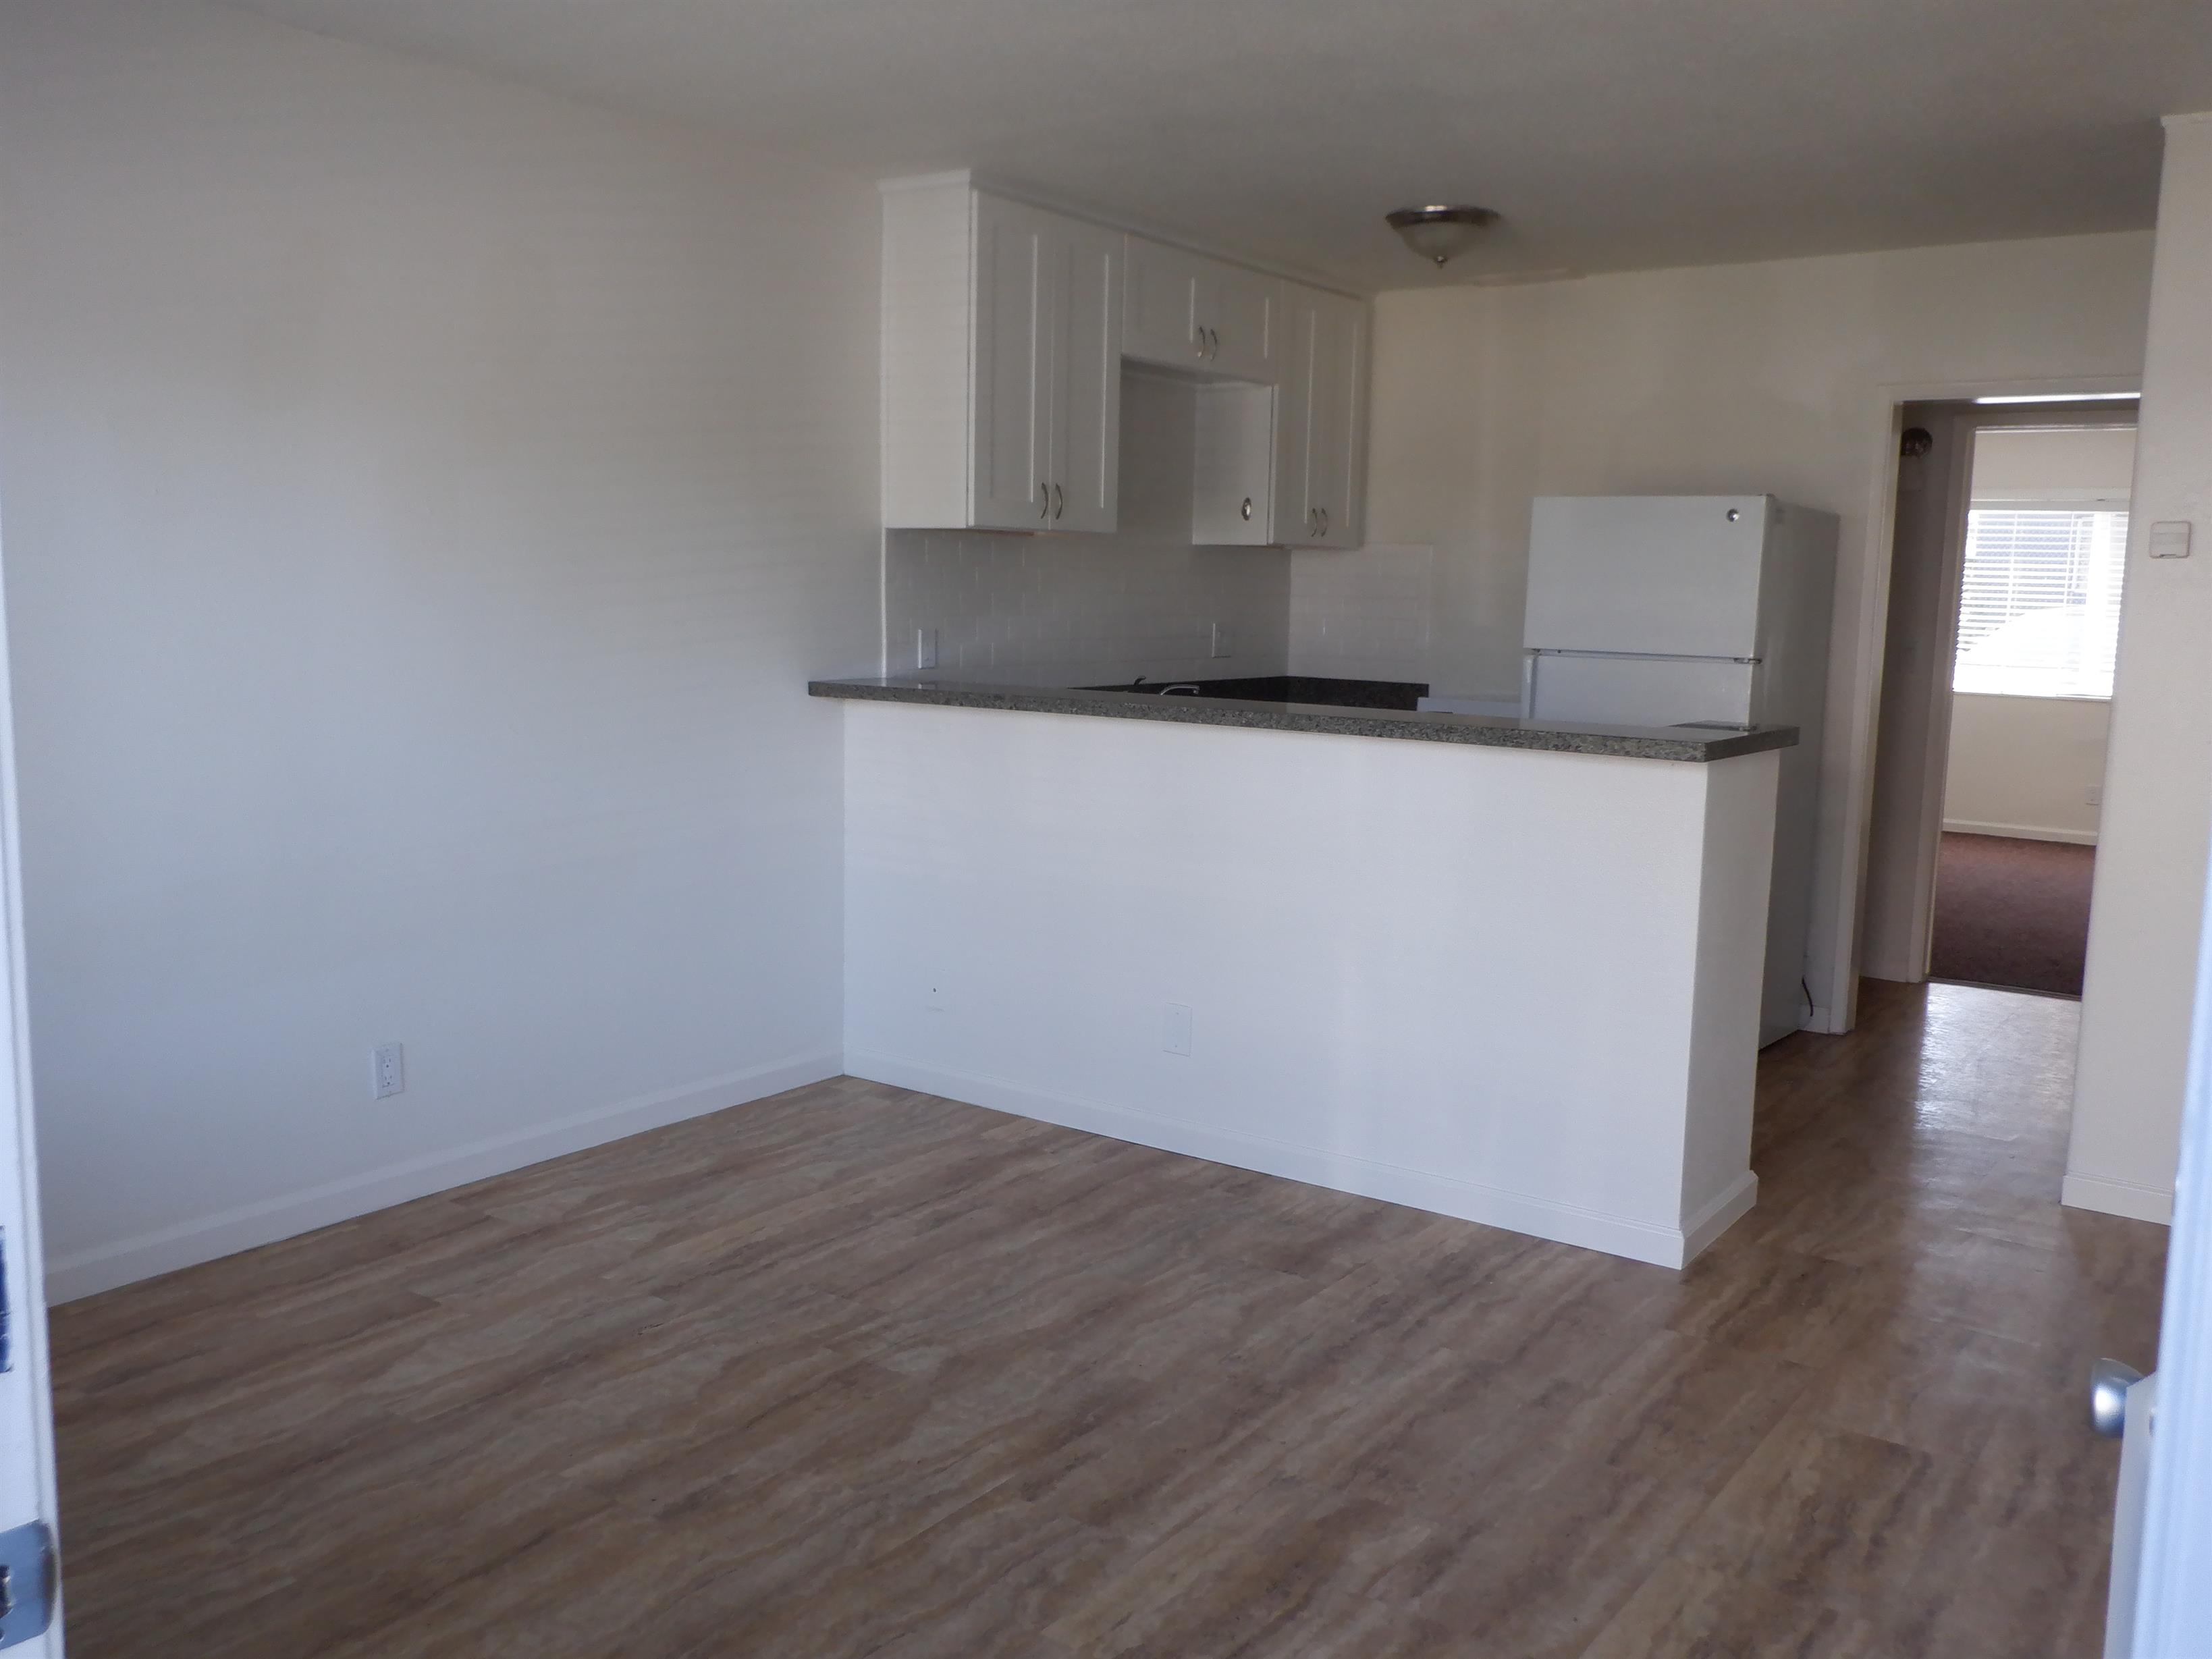 6691 Abrego Rd 7 image